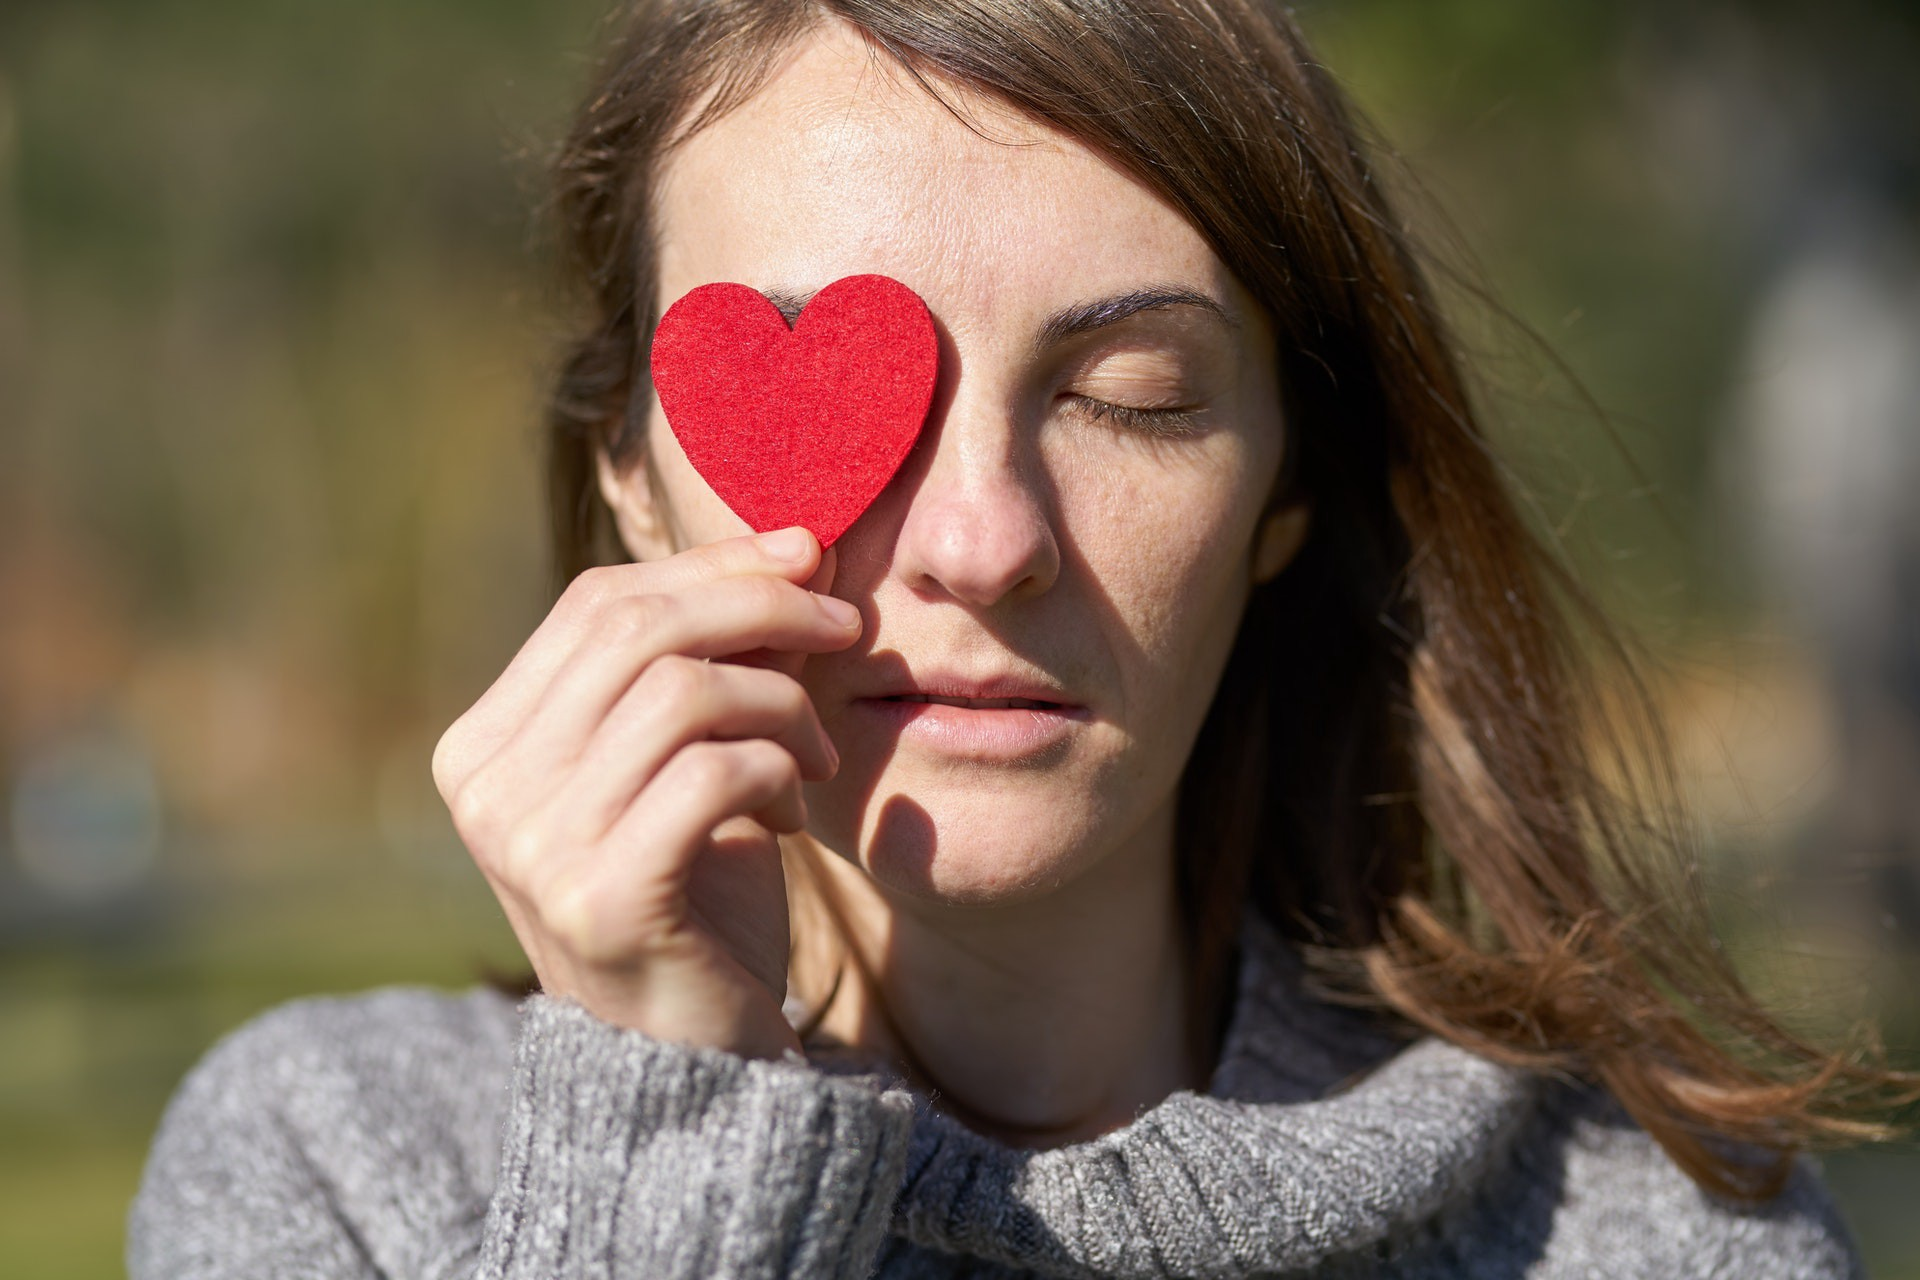 Woman holding a heart-shaped fabric over her right eye